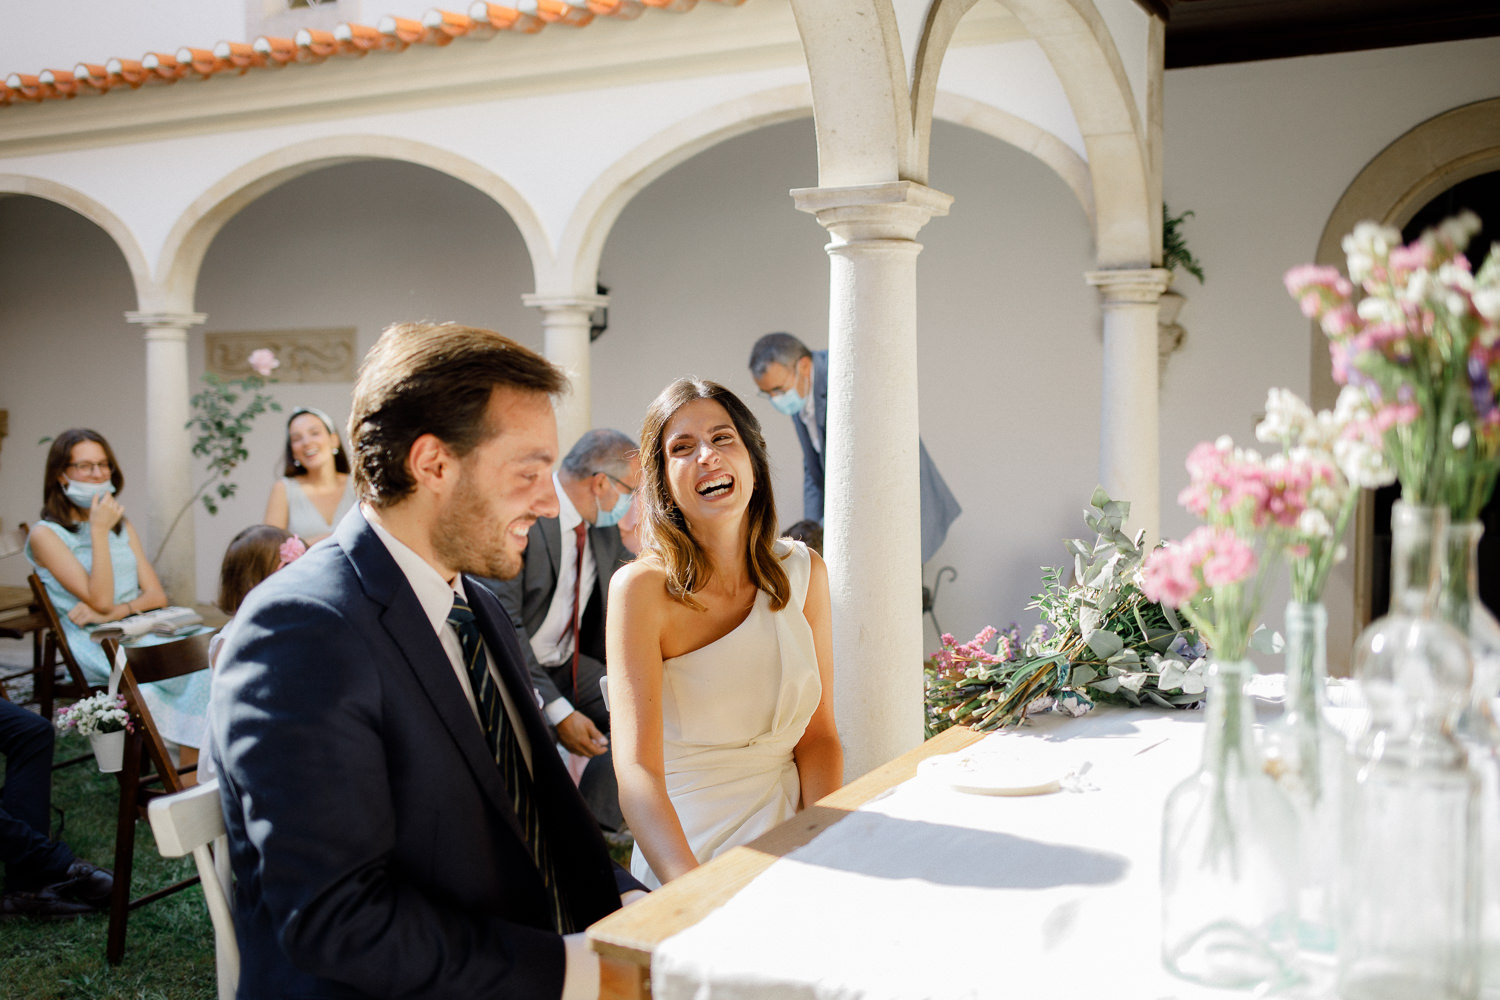 Small Intimate Wedding in Portugal